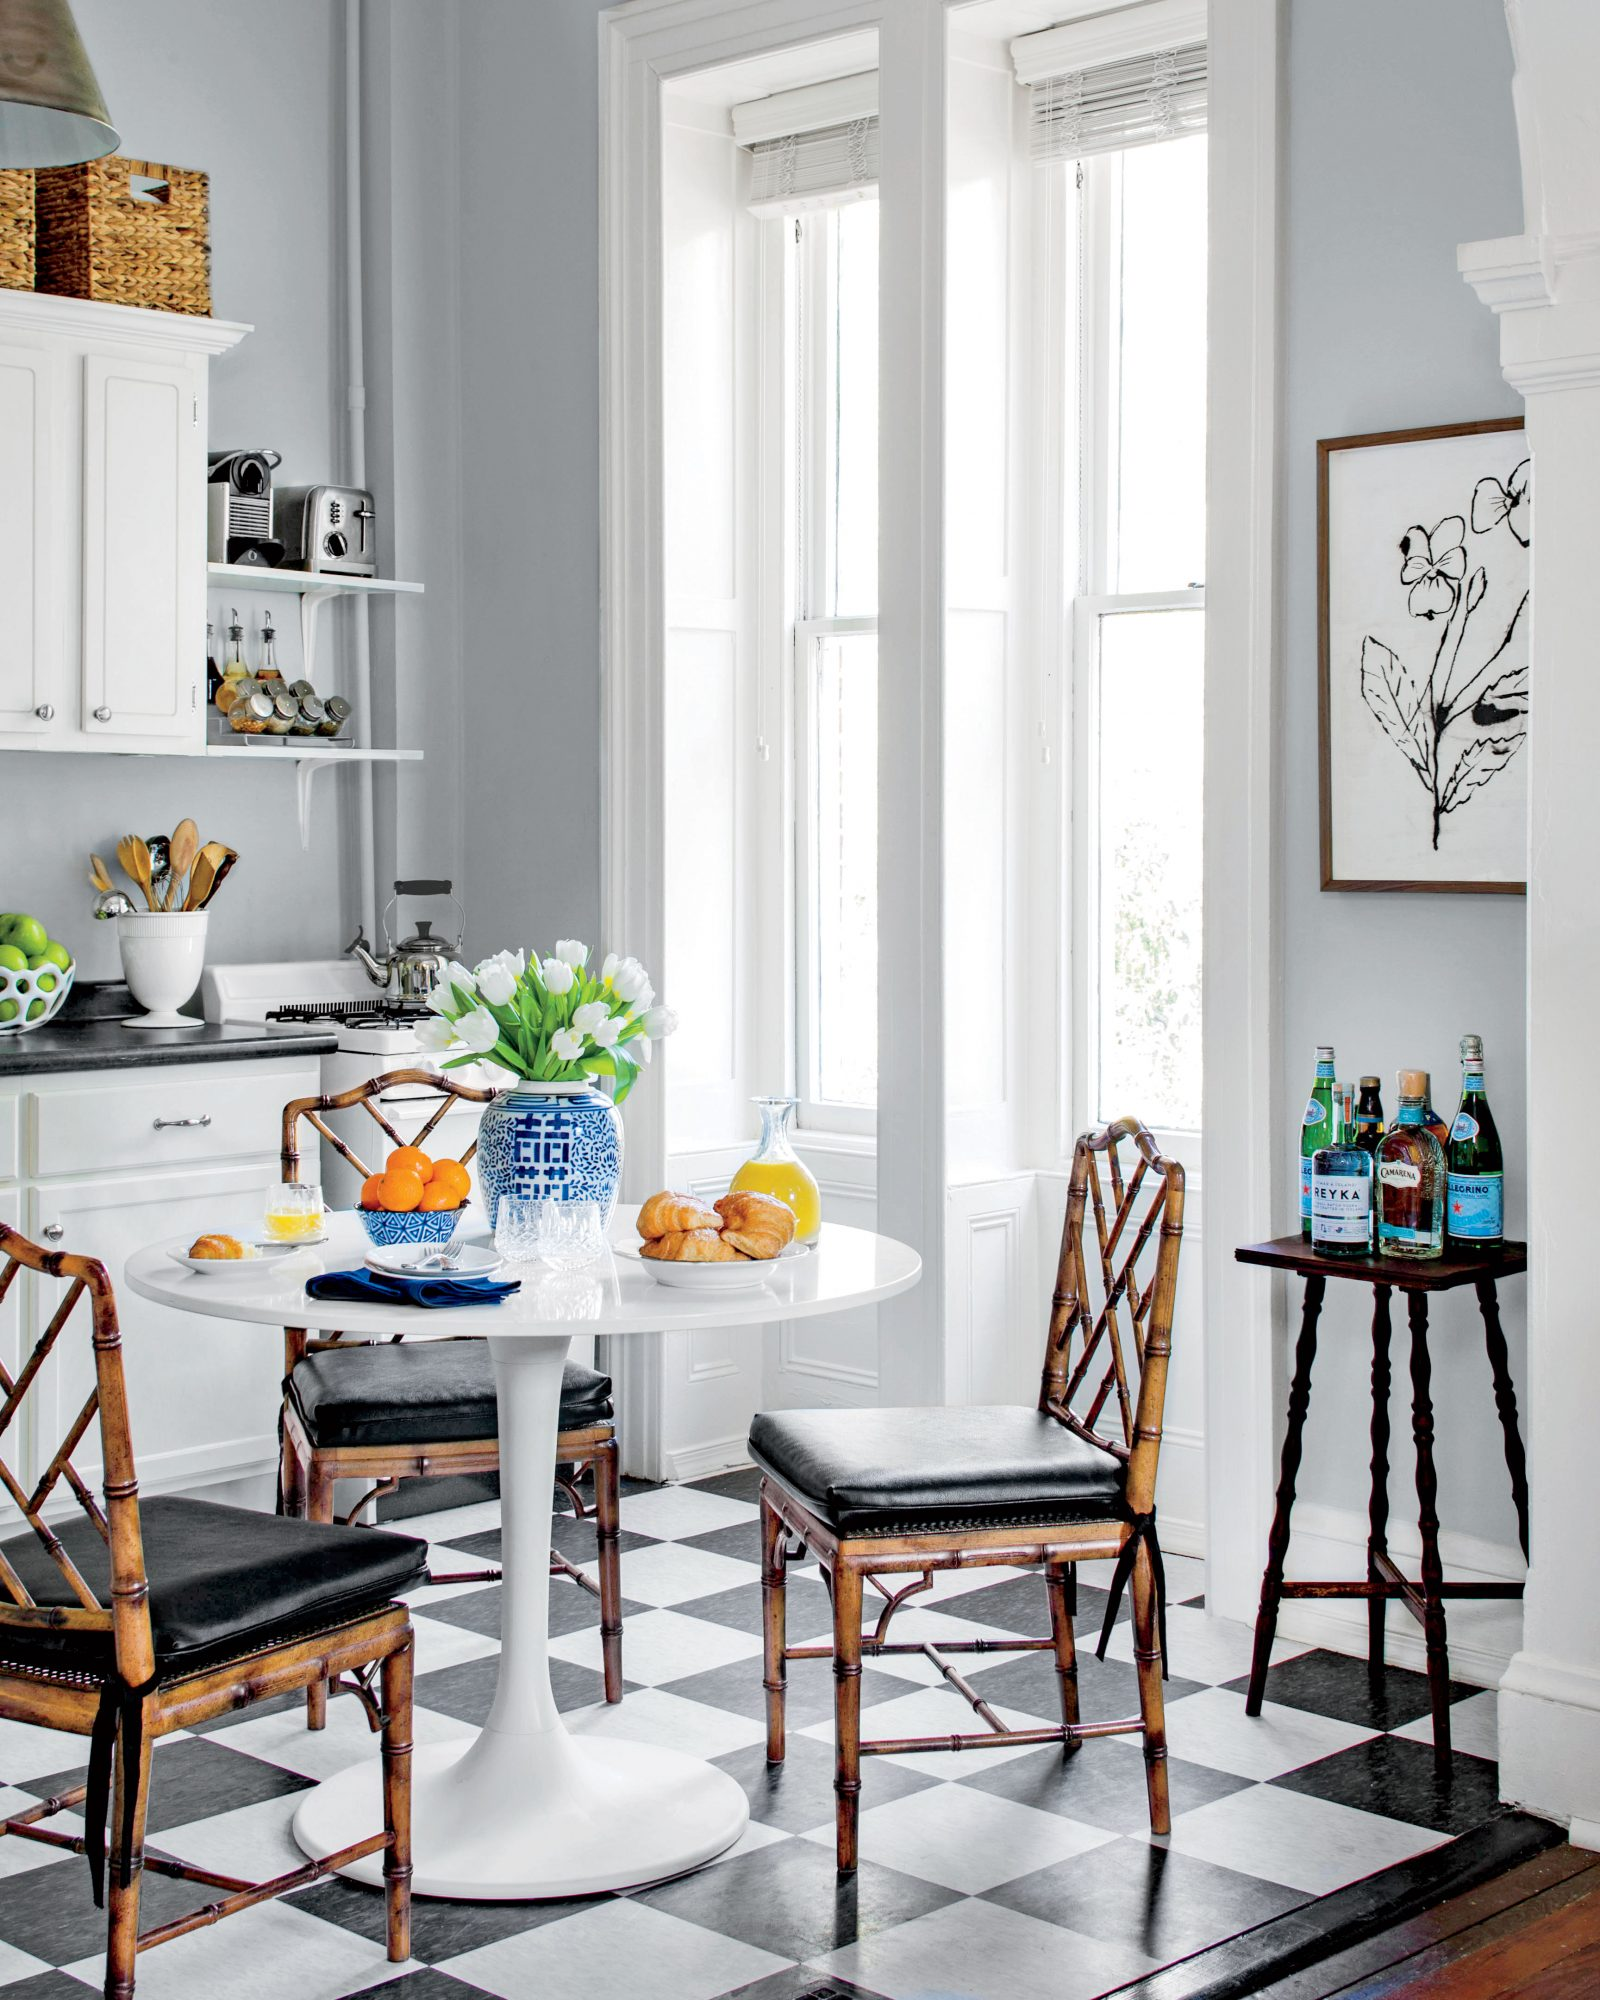 Small apartment kitchen with black and white tile floors and white tulip table for seating